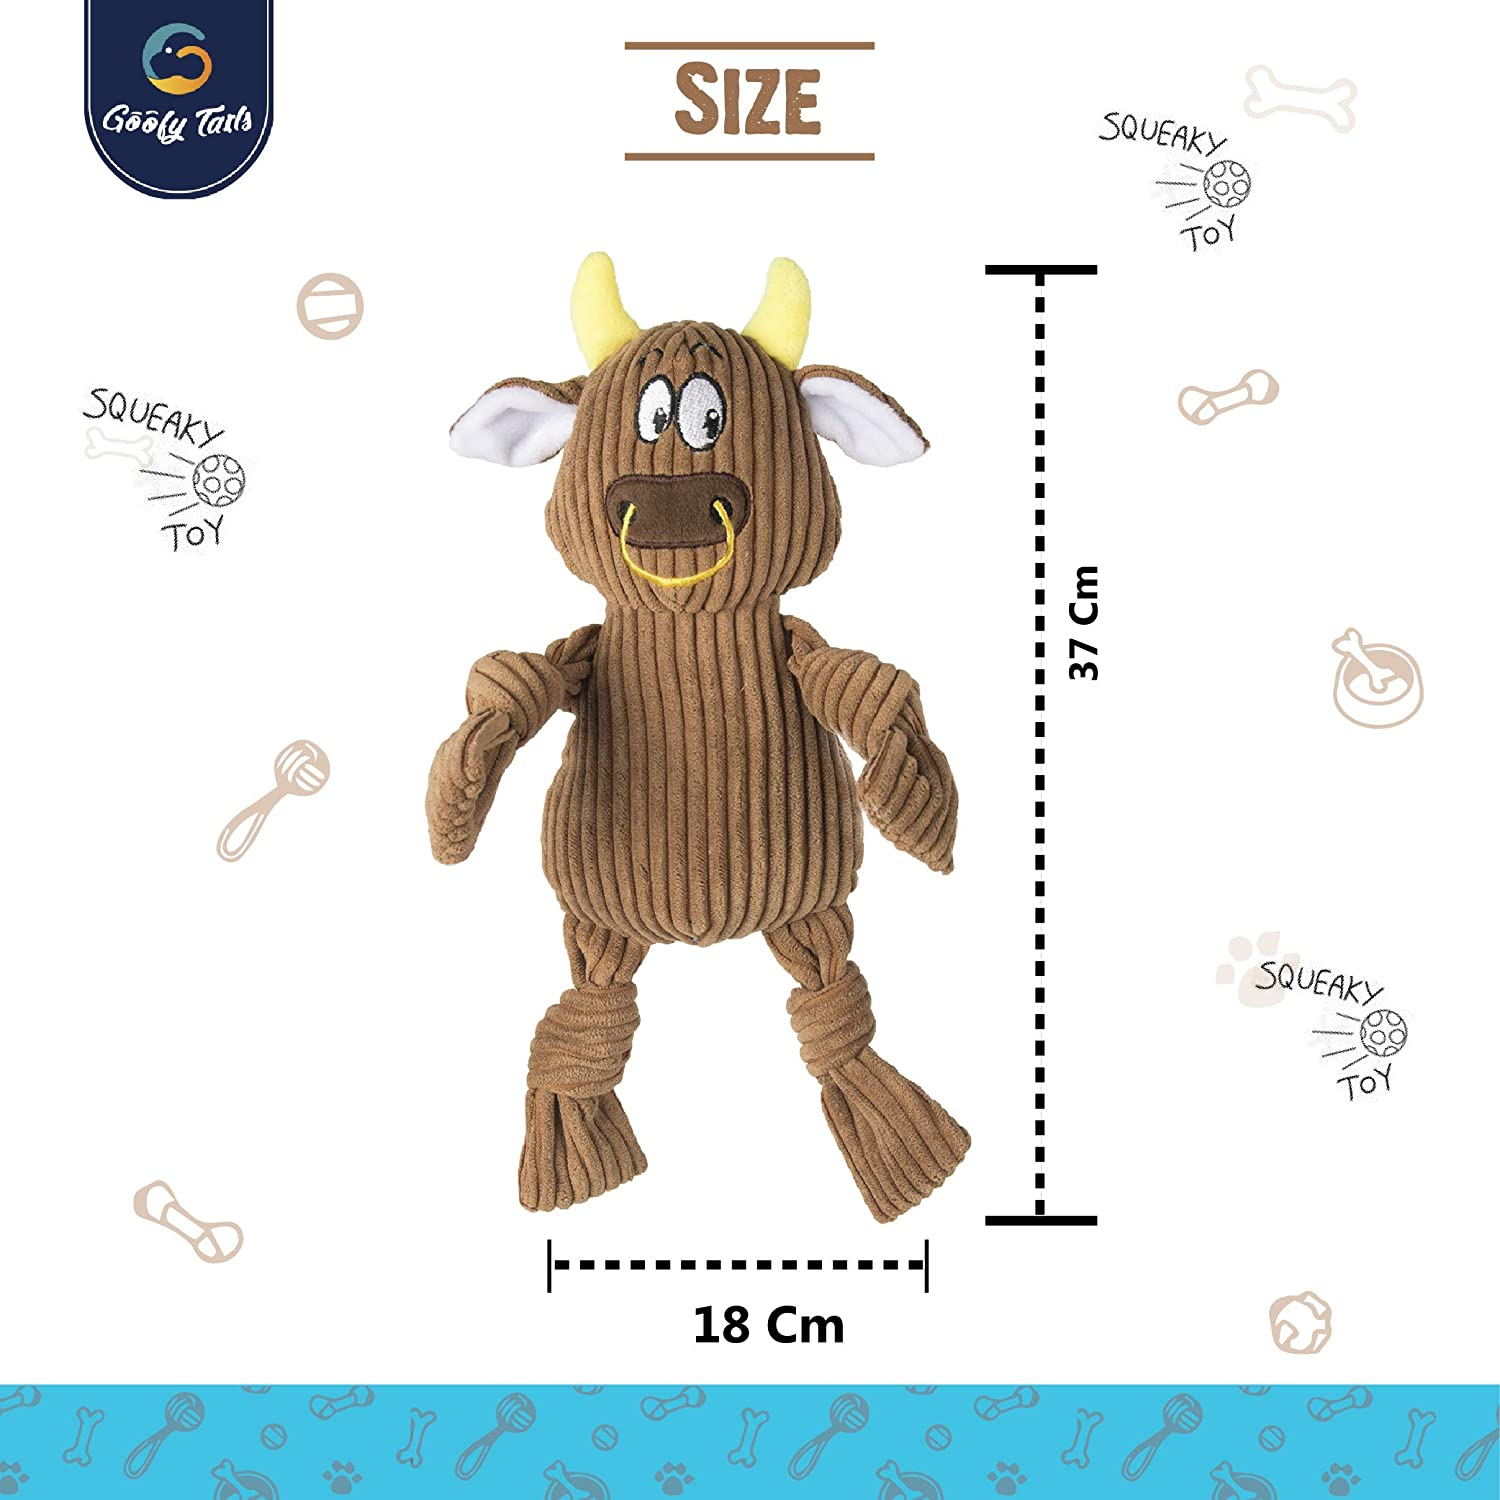 Buy Goofy Tails Fluffy Brown Cow Squeaky Plush Dog Toy For Small Medium Breeds Online At Low Prices In India Amazon In